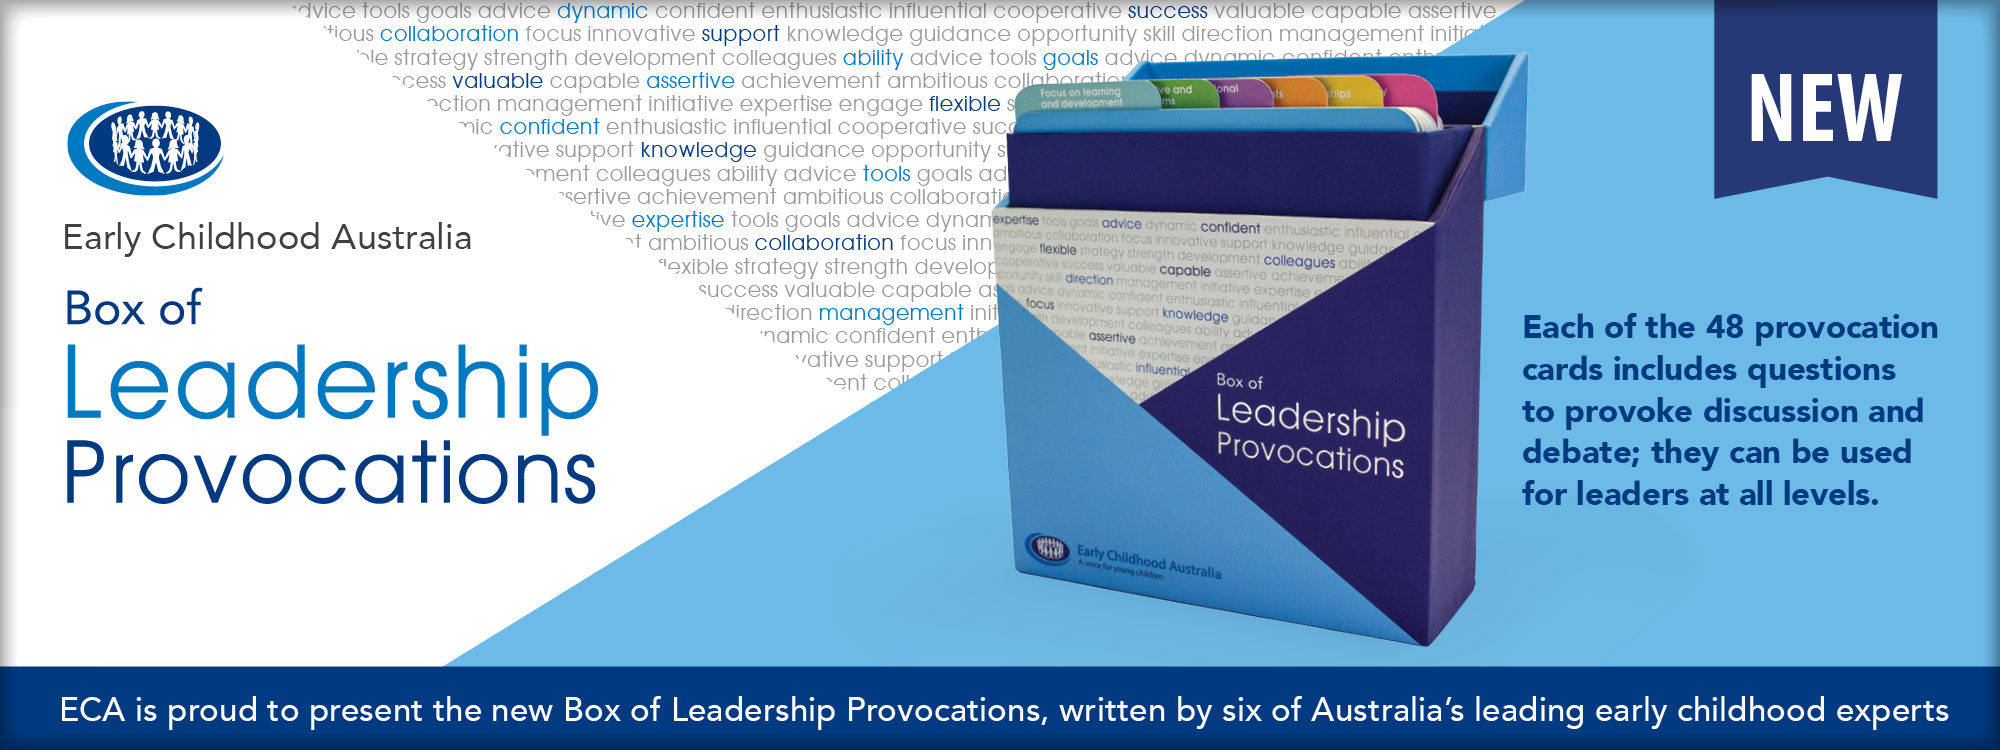 ECALCF-19-287-ECA-Box-of-Leadership-Provocations-ECA-Home-Page-banner-High-Res-V1